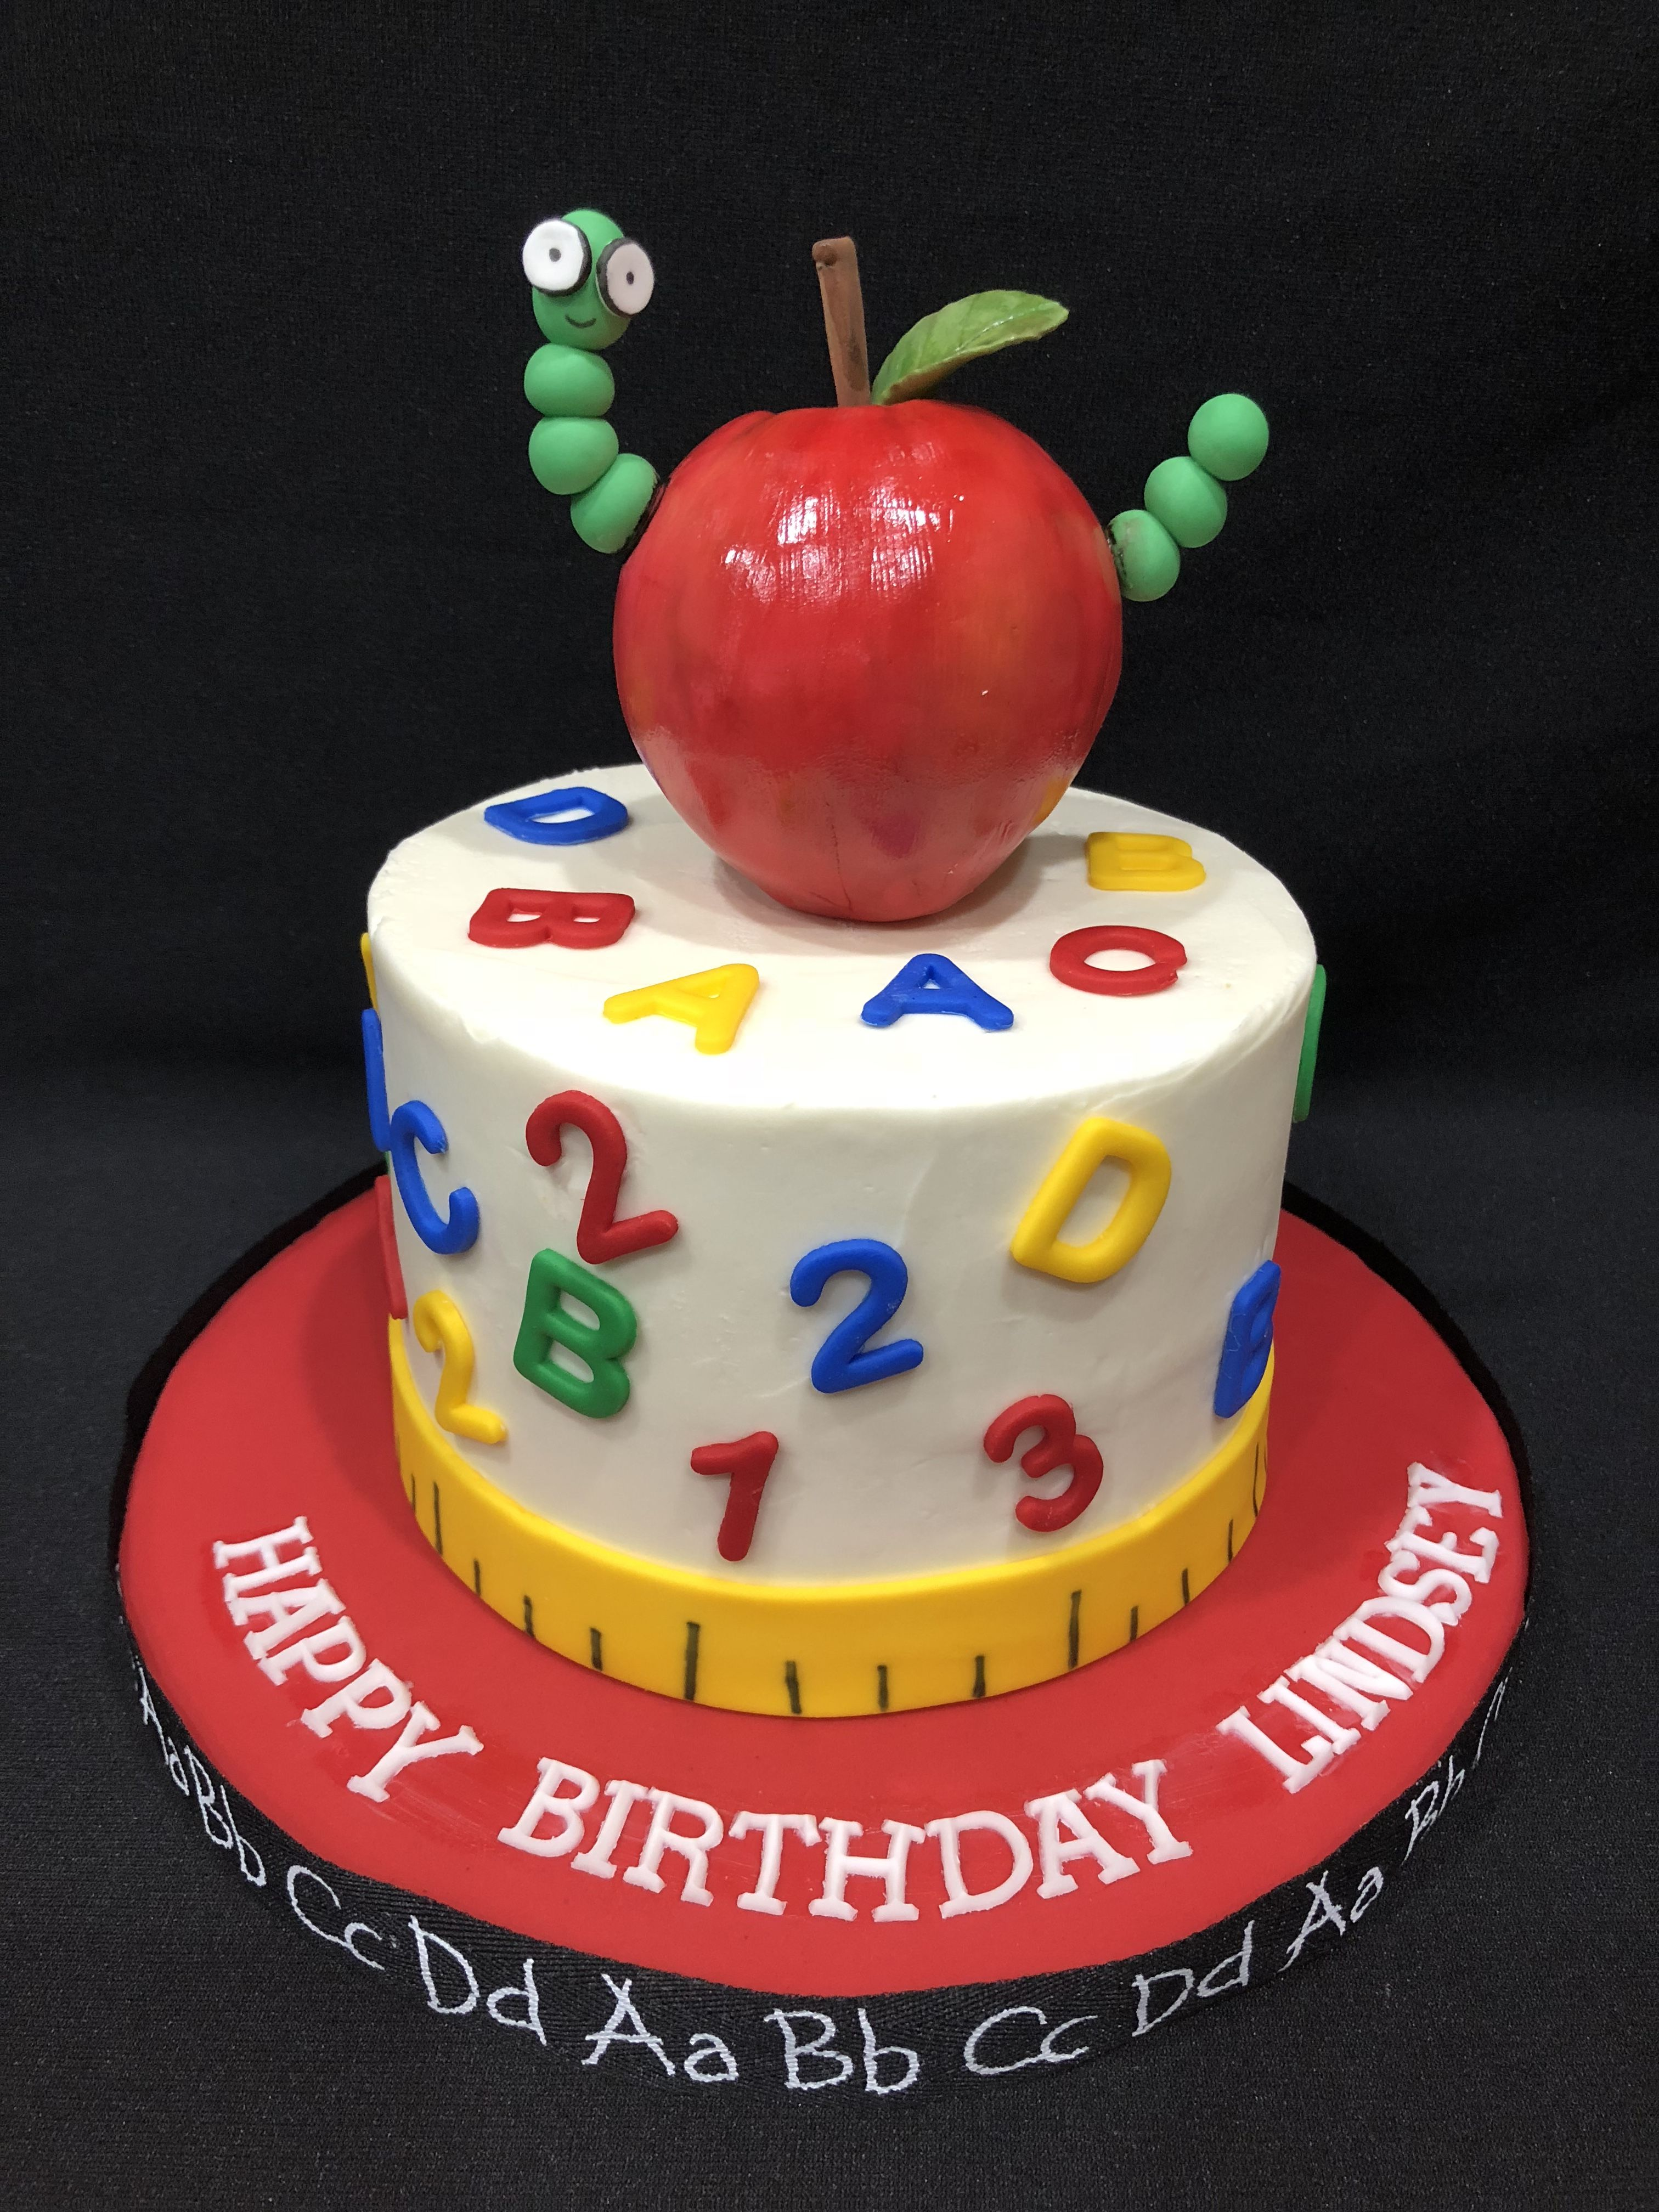 Stupendous Teacher Birthday Cake With Bookworm In Apple With Images Funny Birthday Cards Online Fluifree Goldxyz